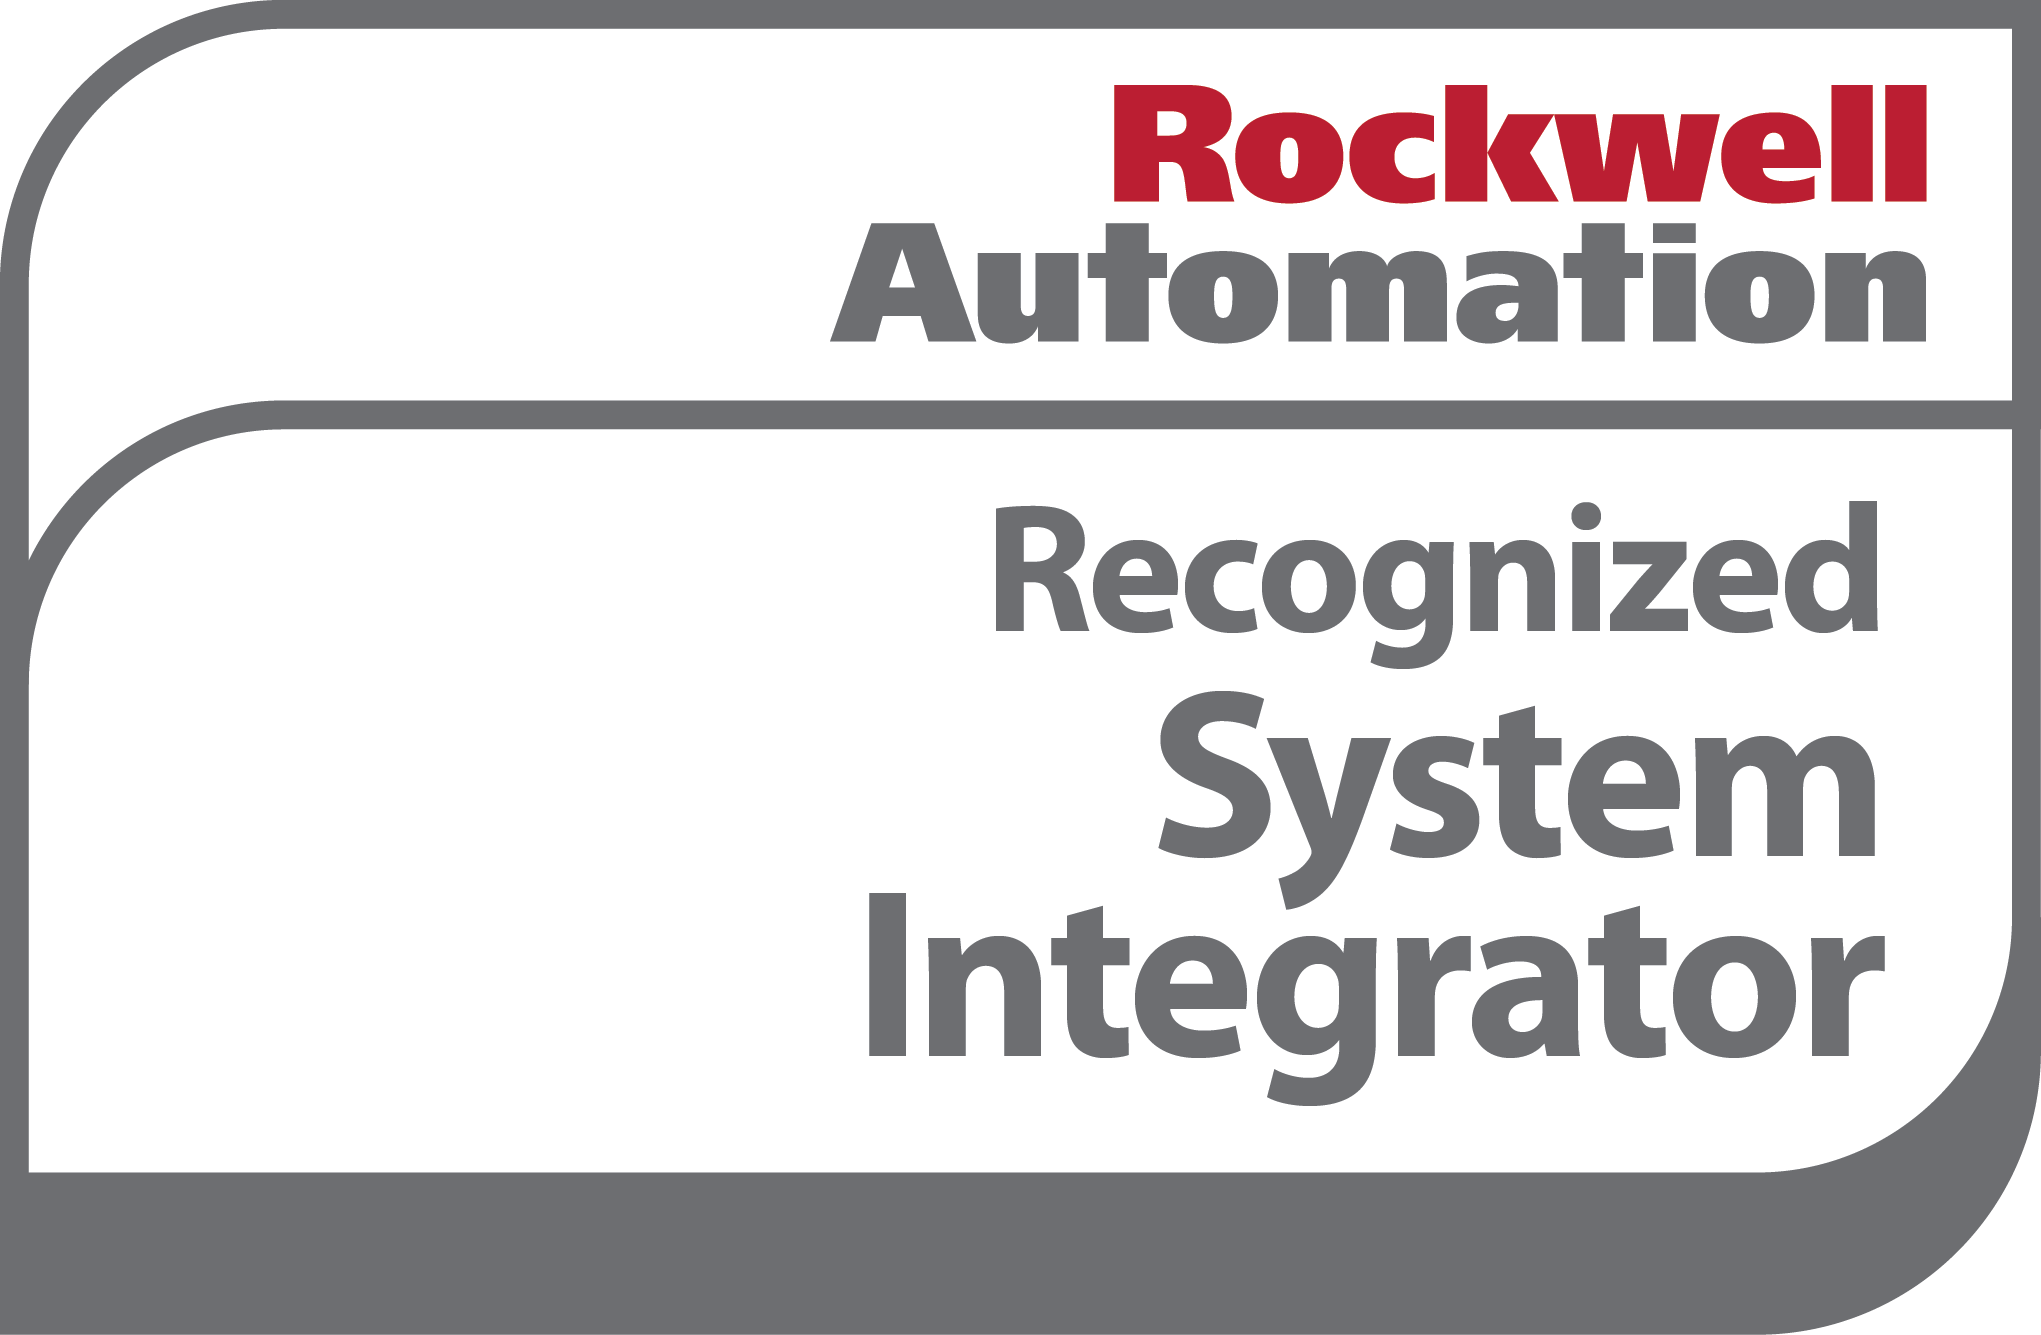 Rockwell Automation Recognized Systems Integrator logo